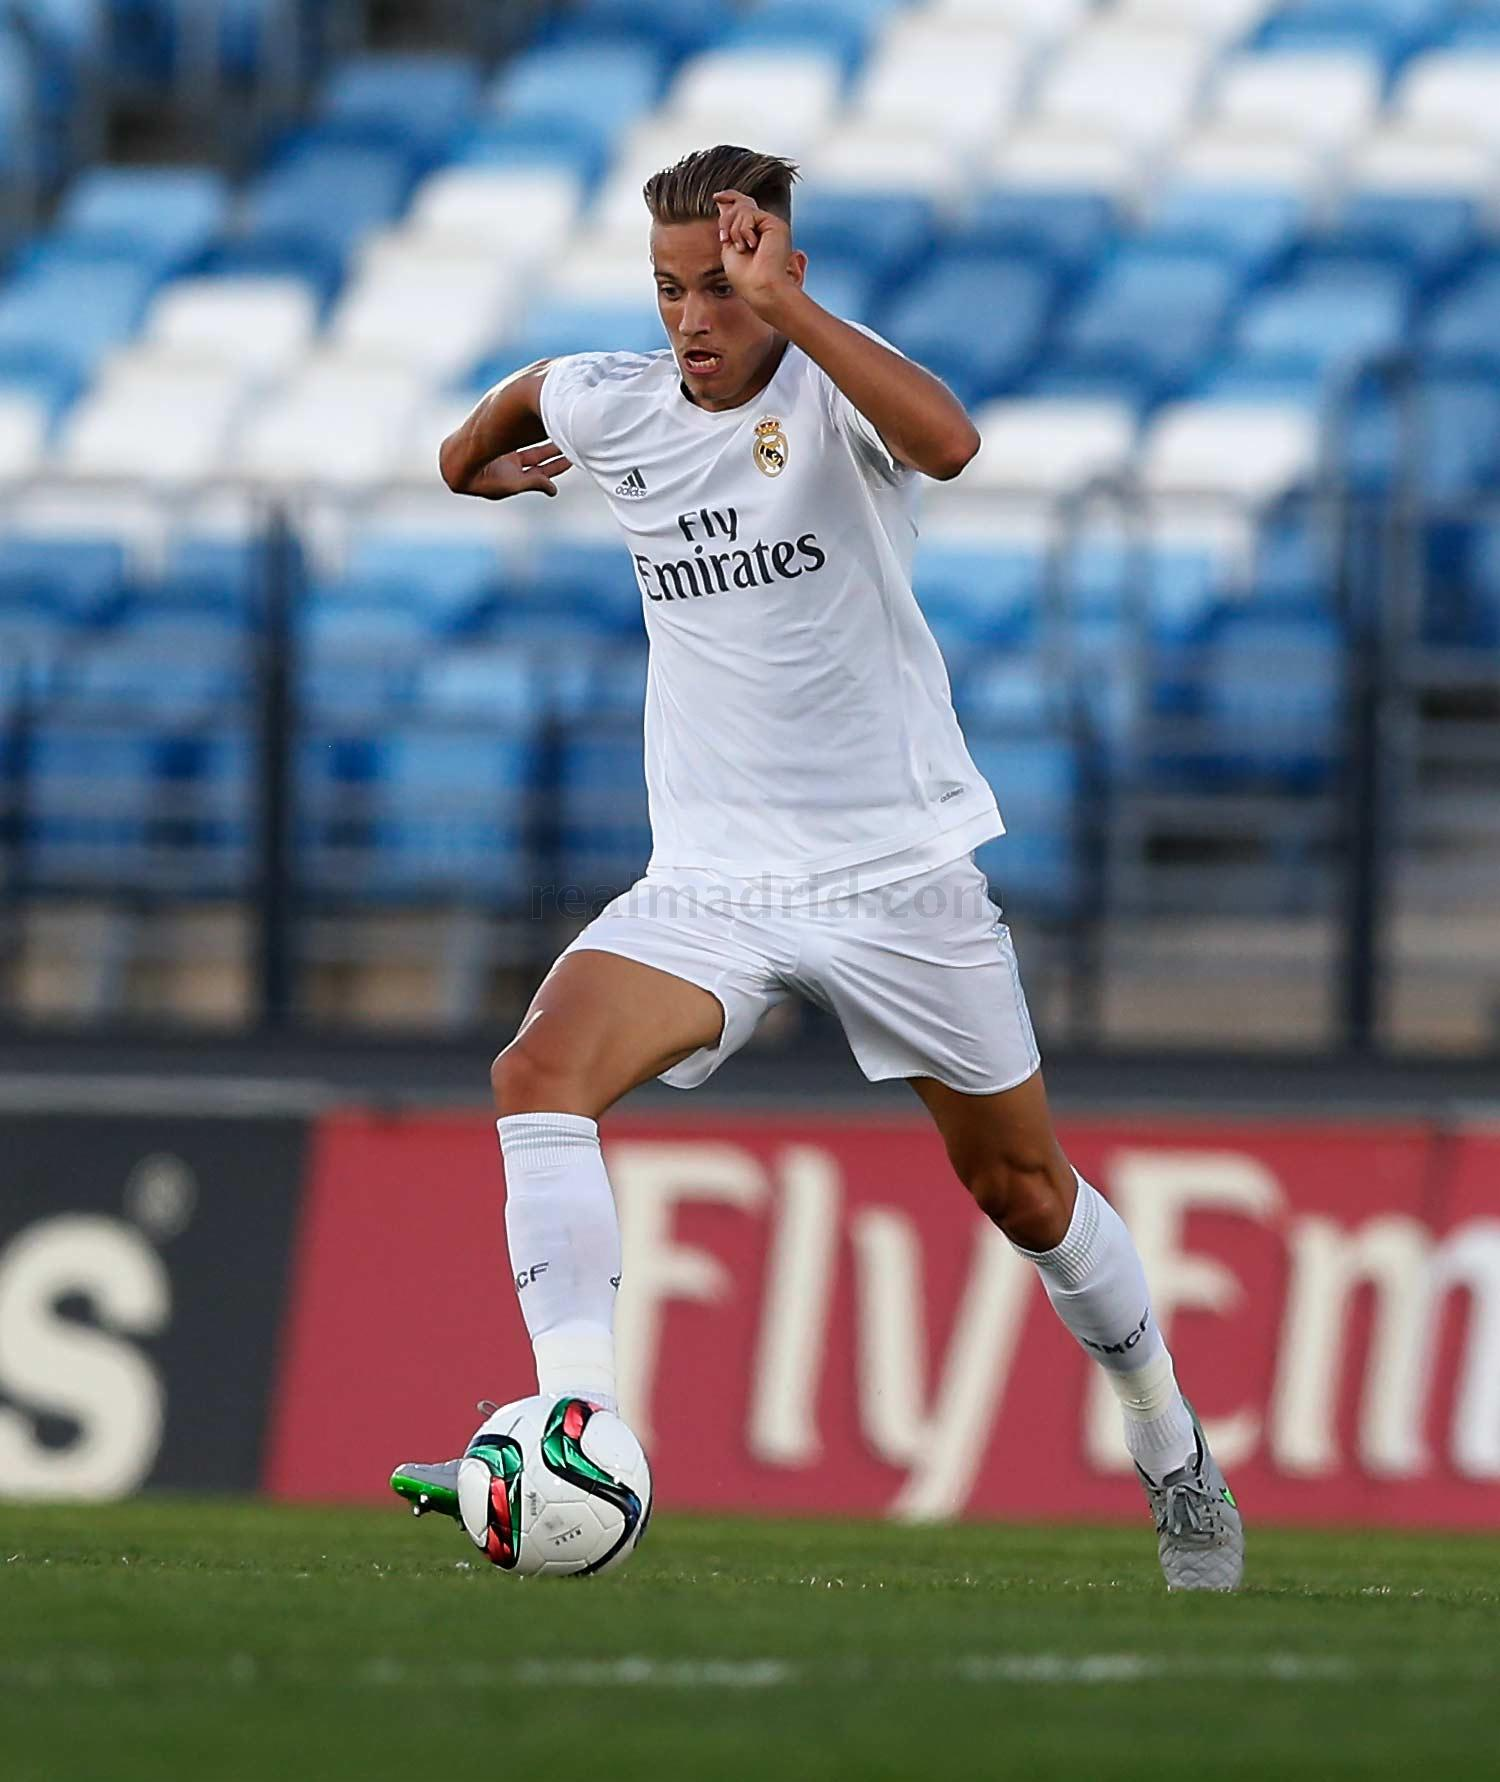 Real Madrid - Castilla - Real Sociedad B - 13-09-2015